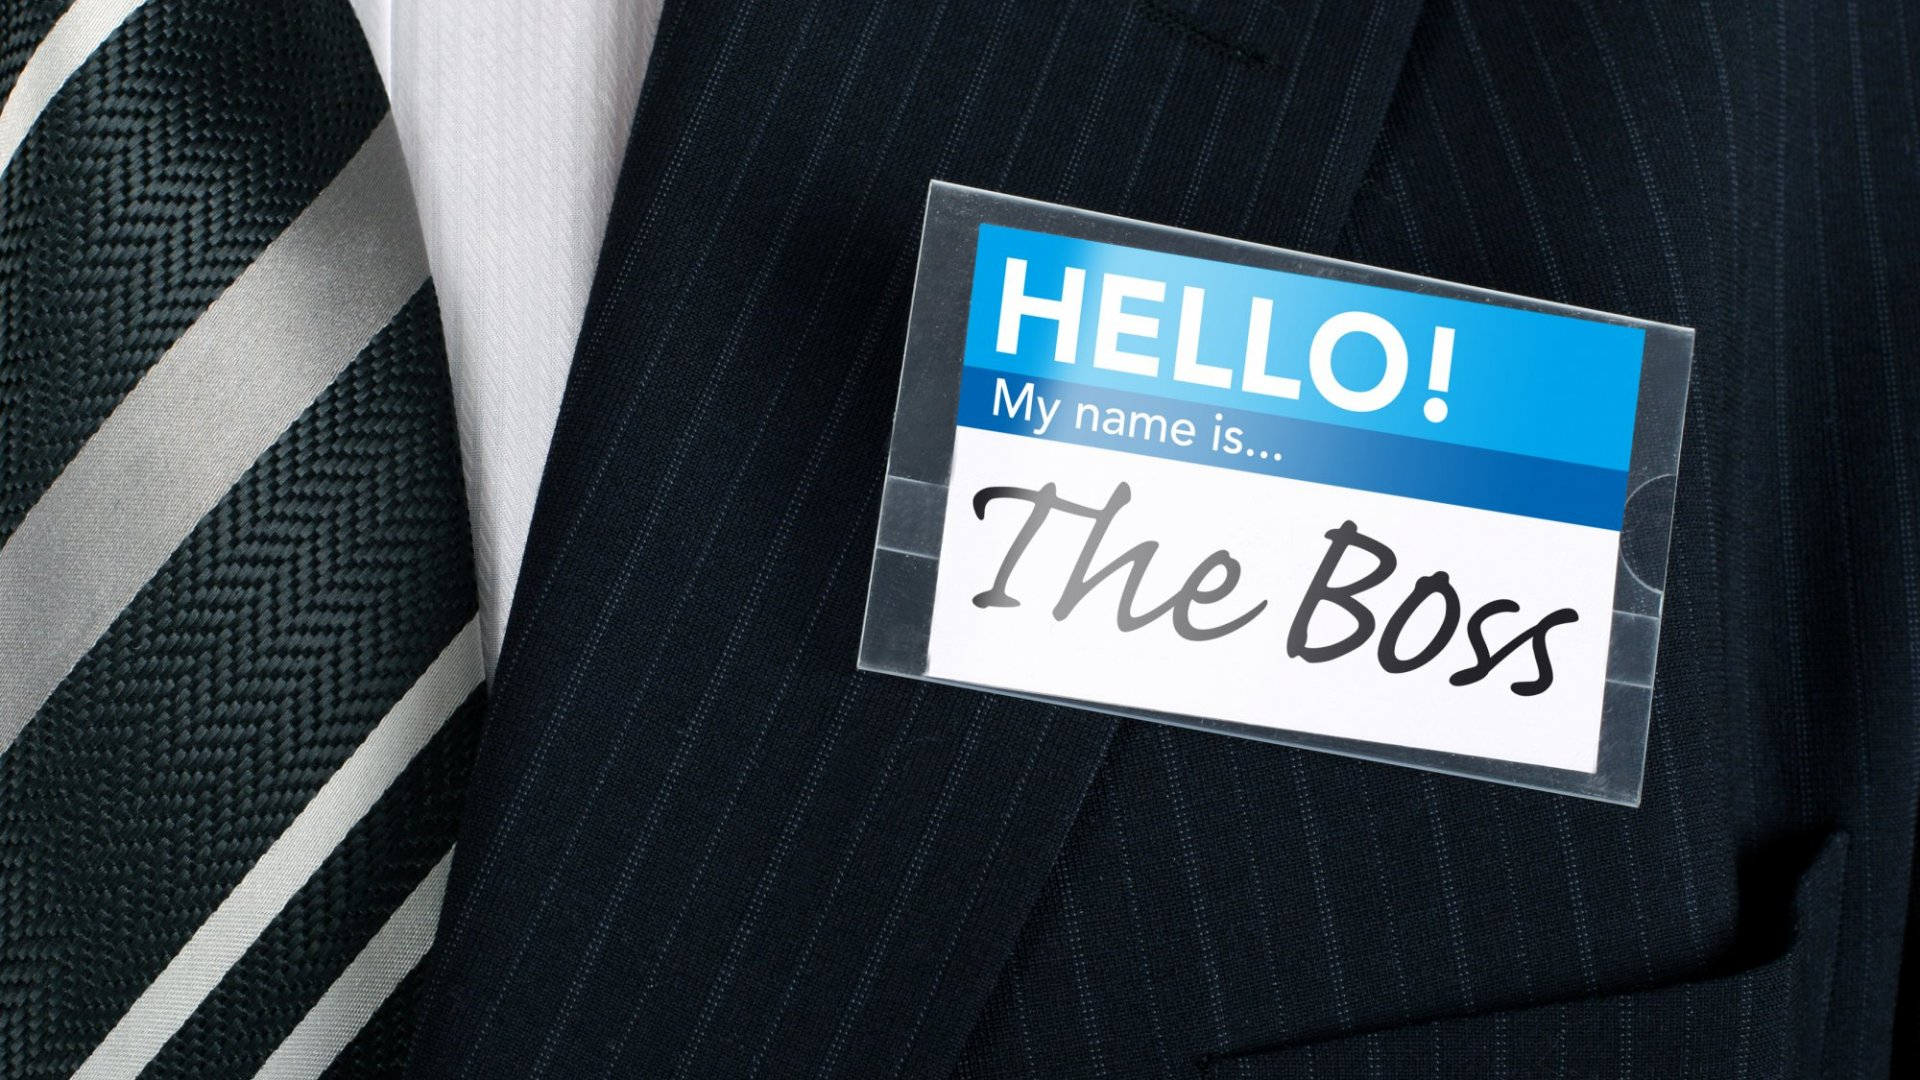 The Best Way to Make a Bad Impression On Your First Day as a New Boss